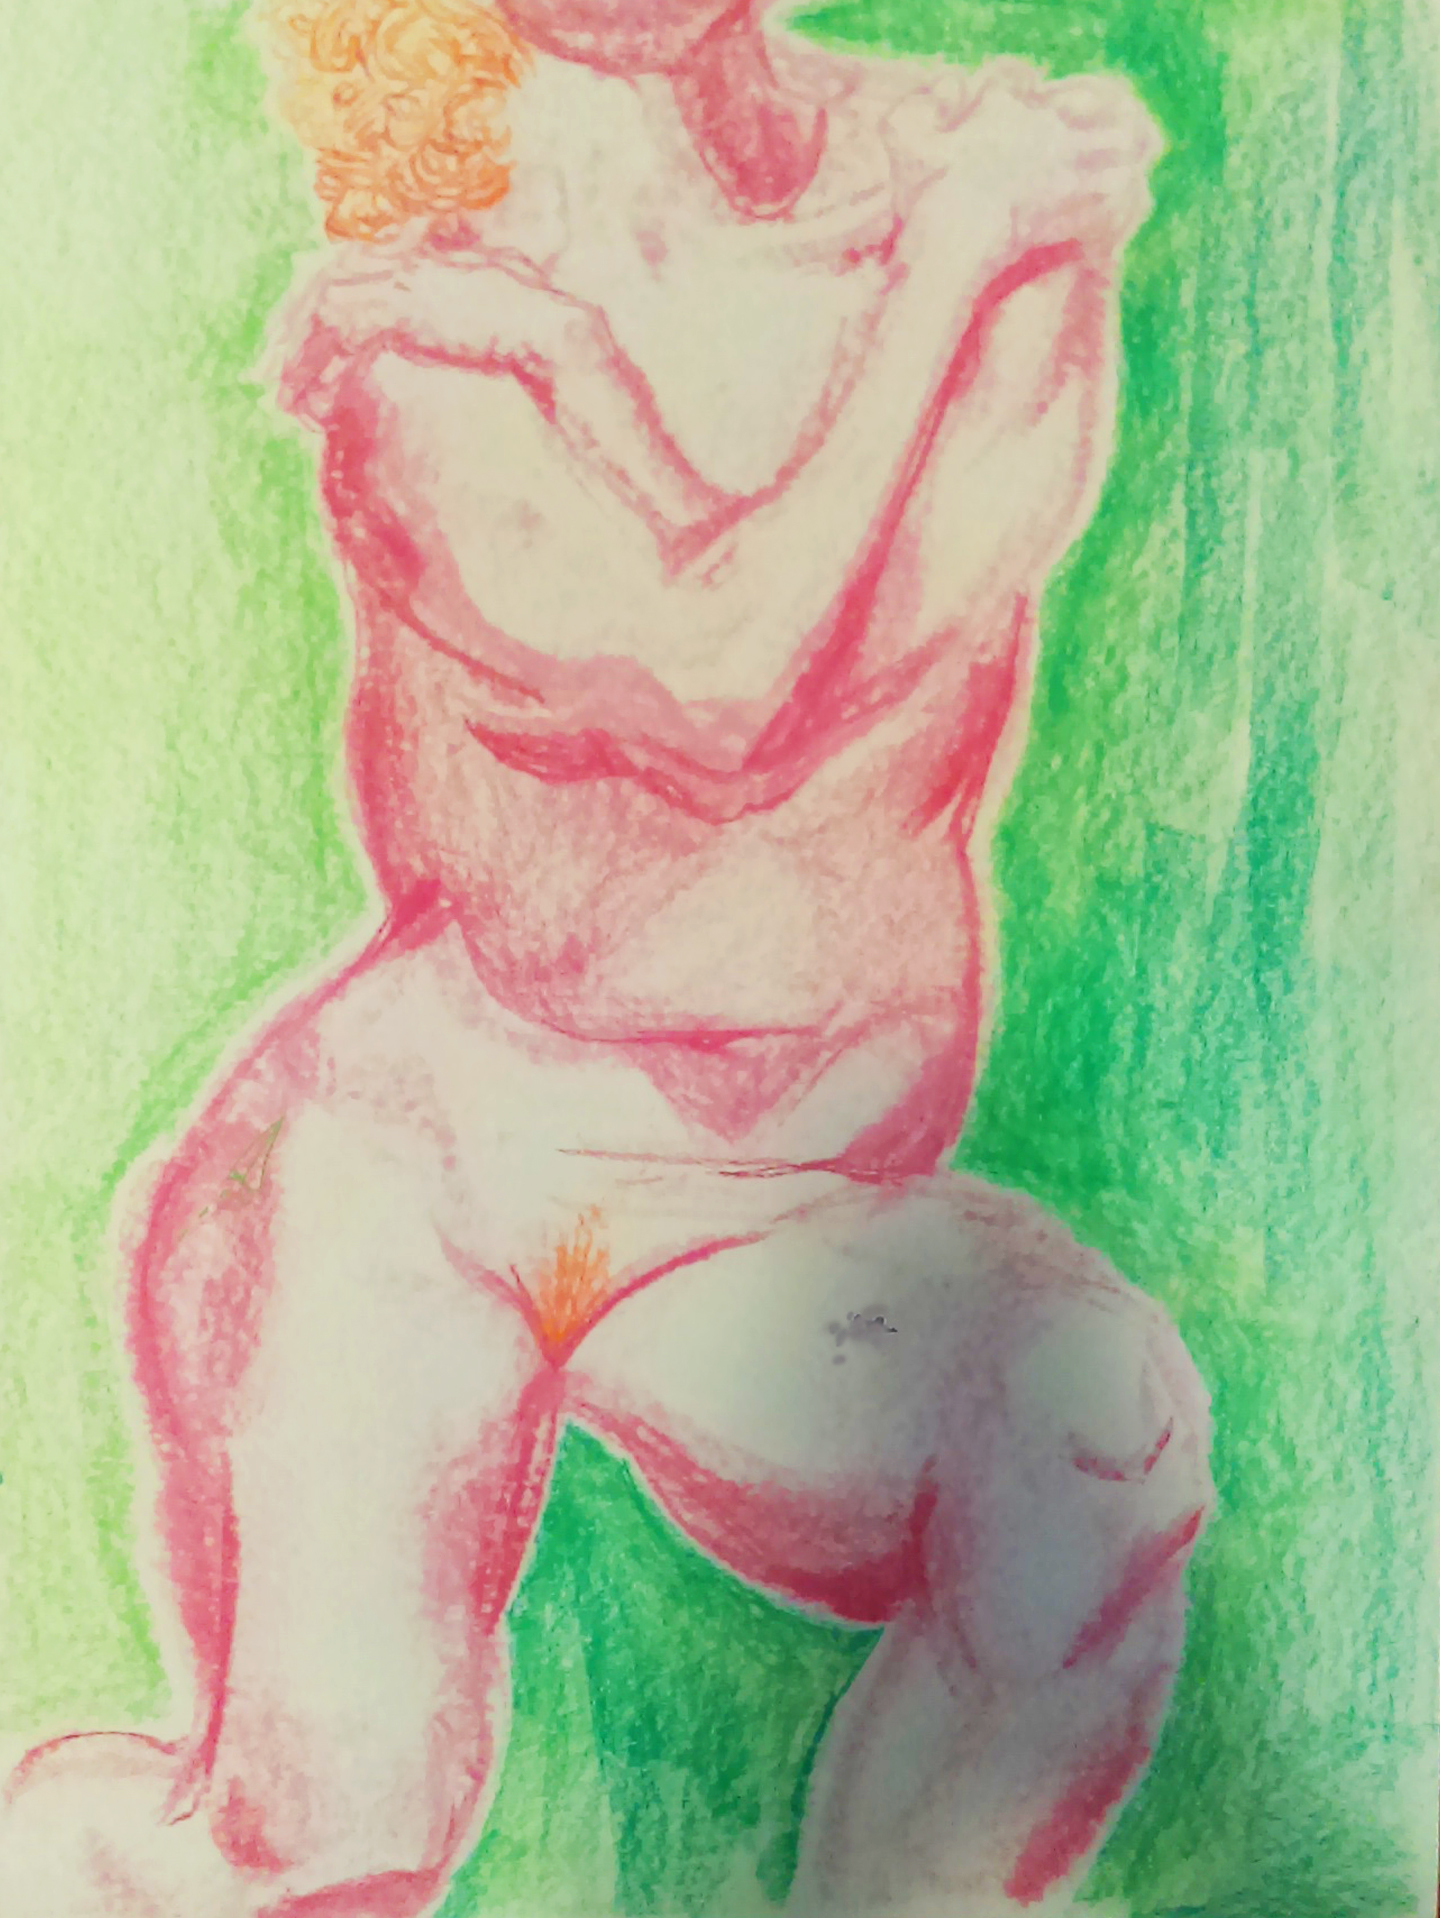 Watermelon - Life Drawing